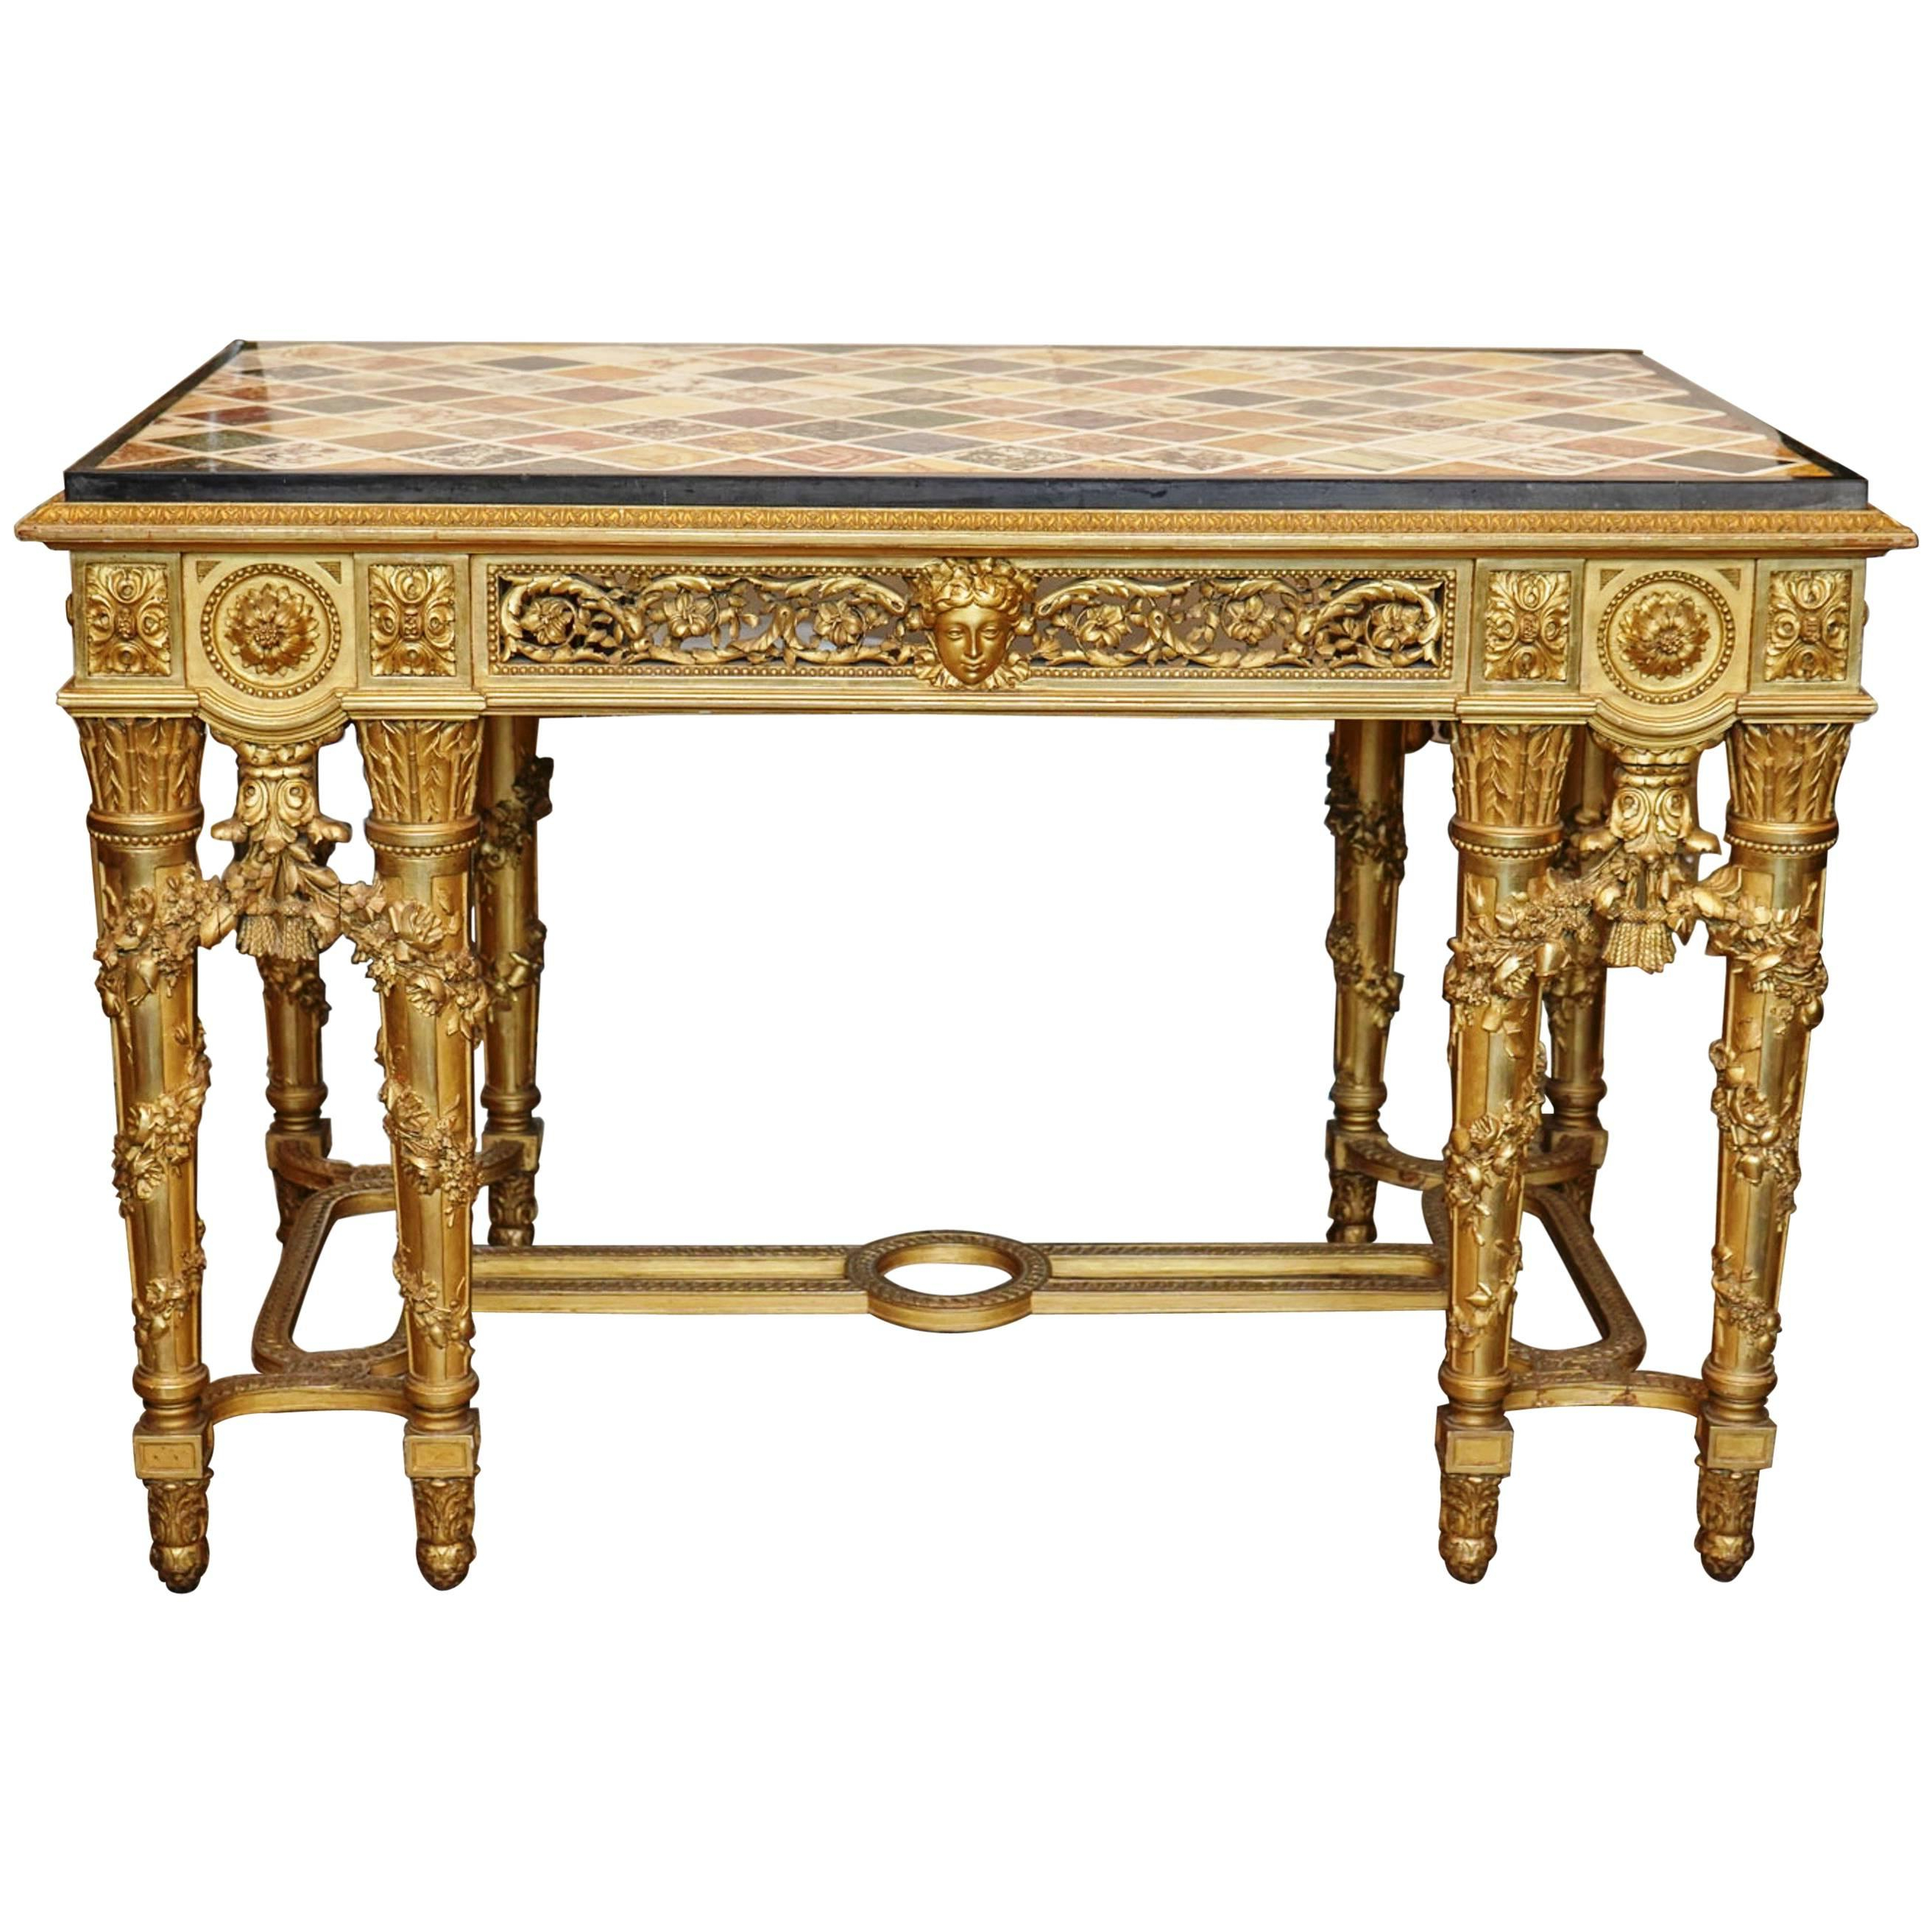 Extraordinary Rectangular Giltwood Centre Table 19th Century Marble Pertaining To Intarsia Console Tables (View 15 of 20)